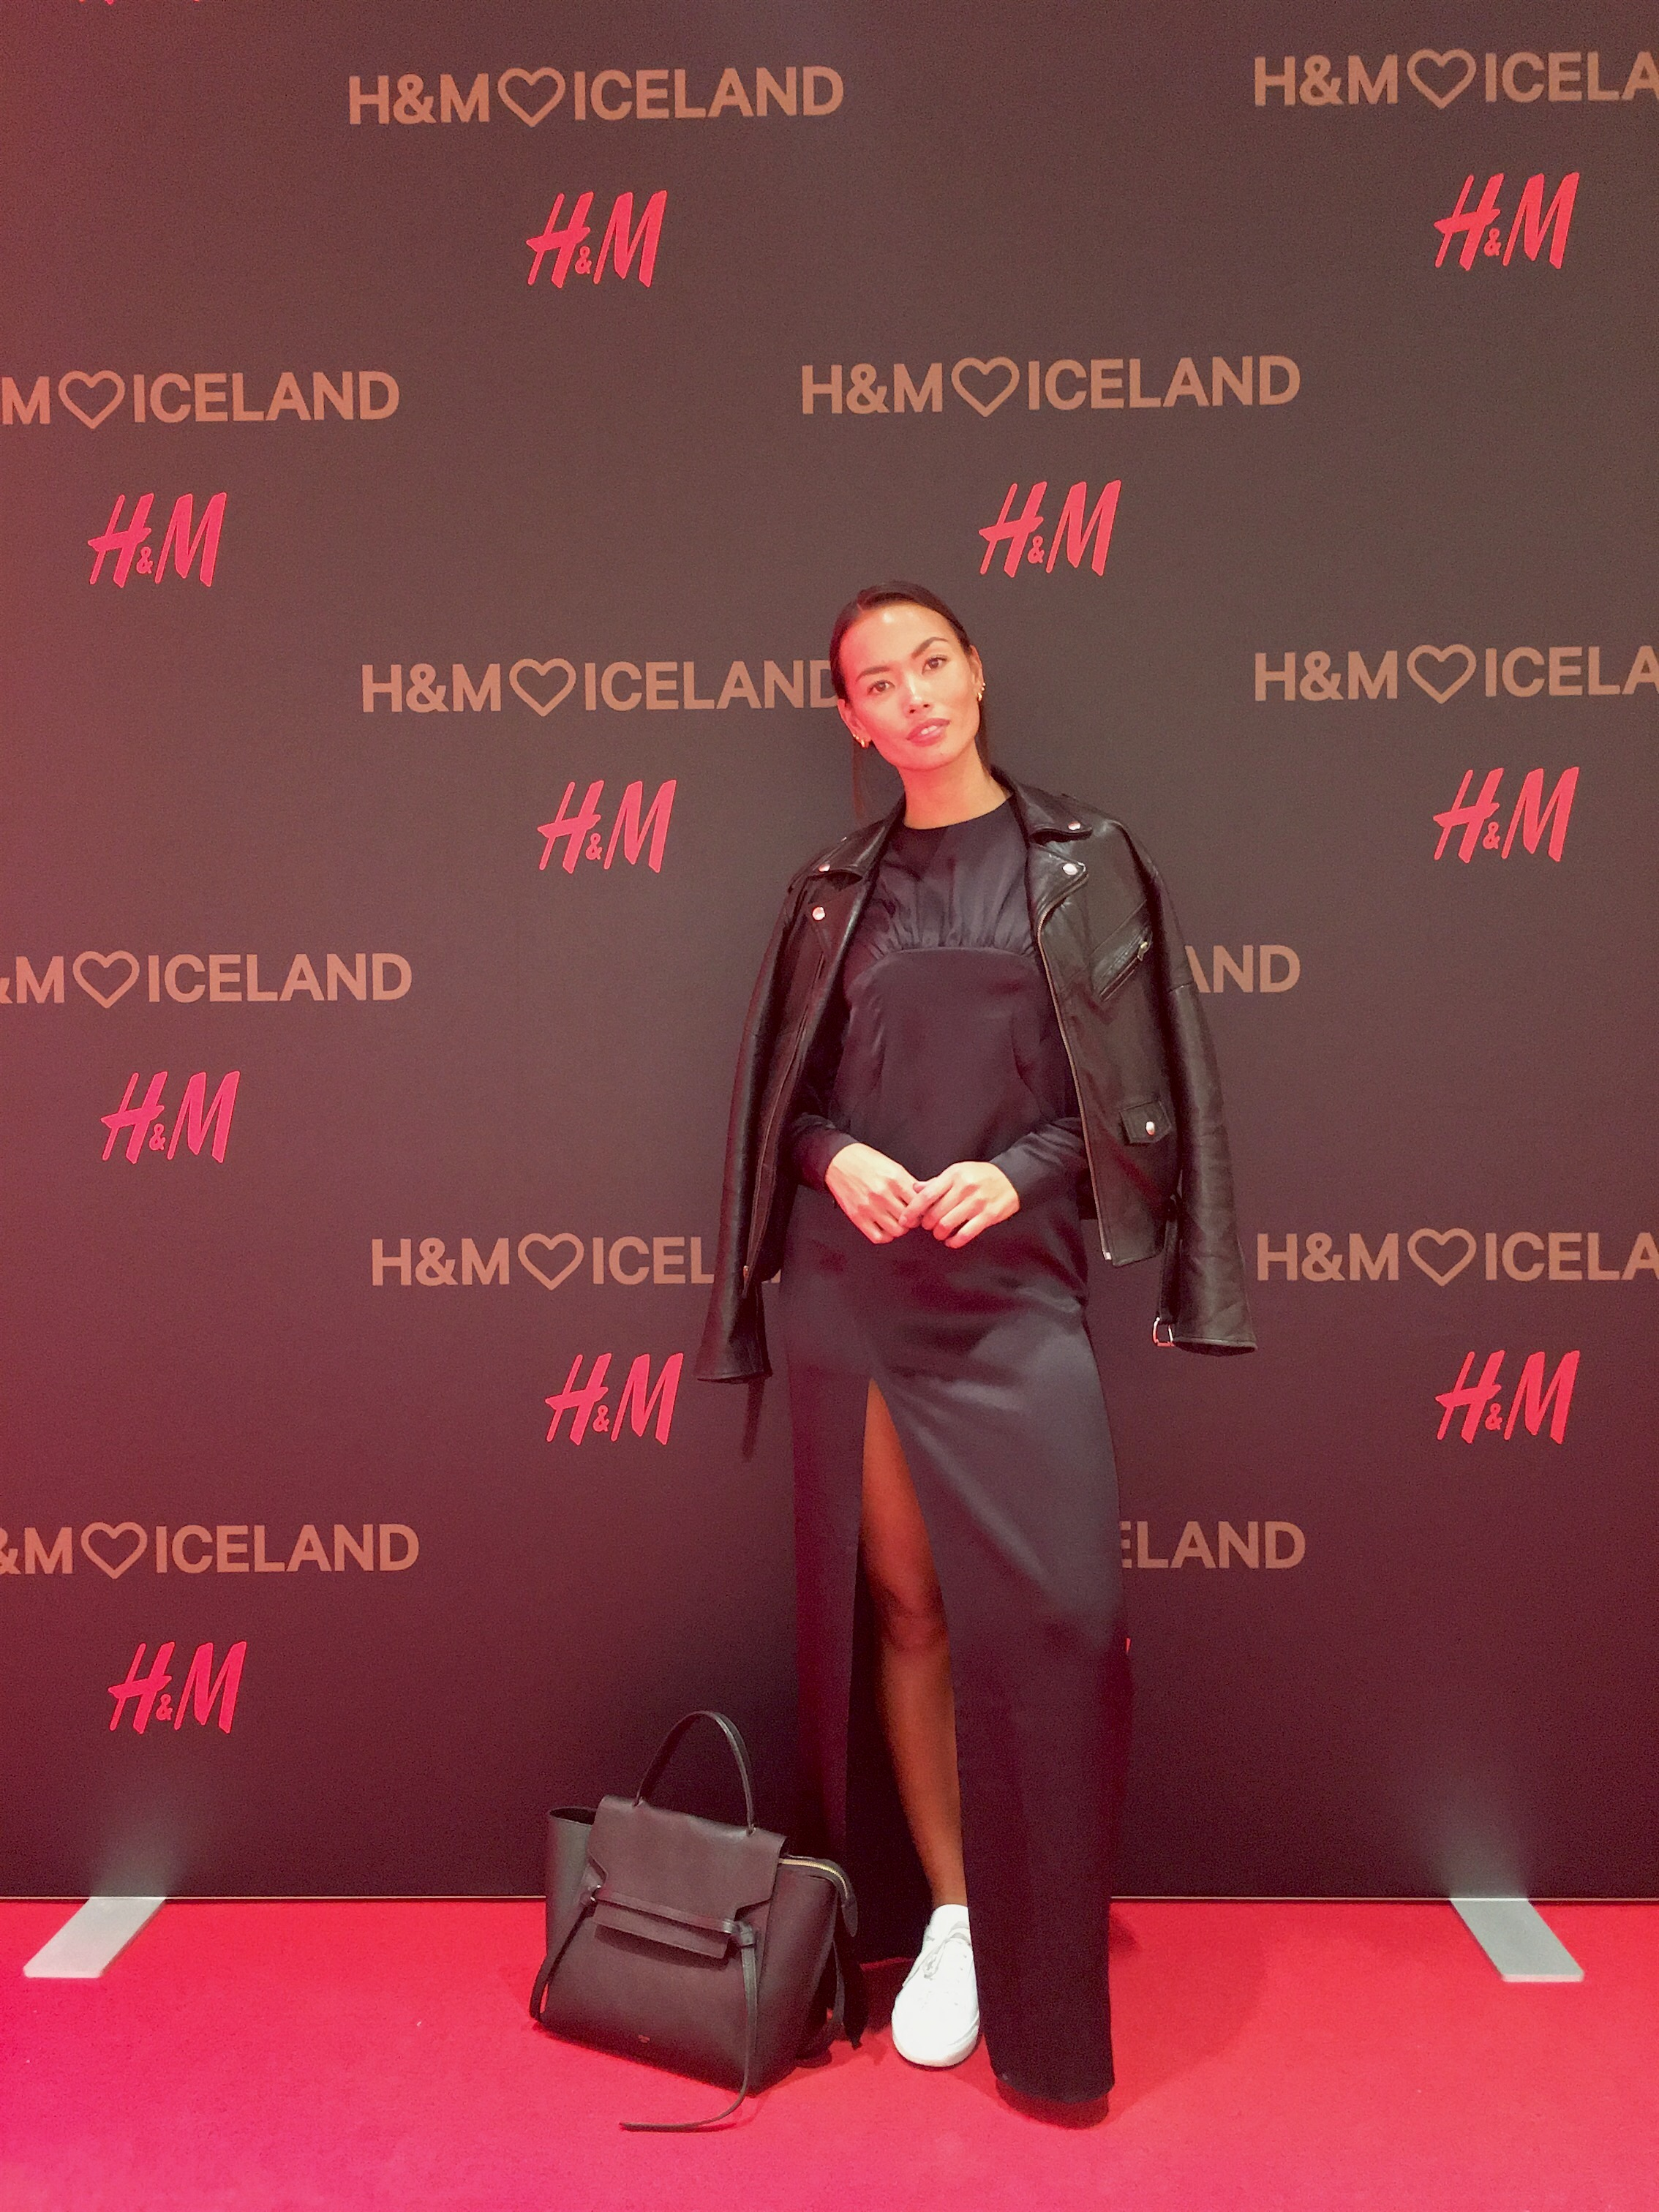 H&M LAUNCH PARTY ICELAND